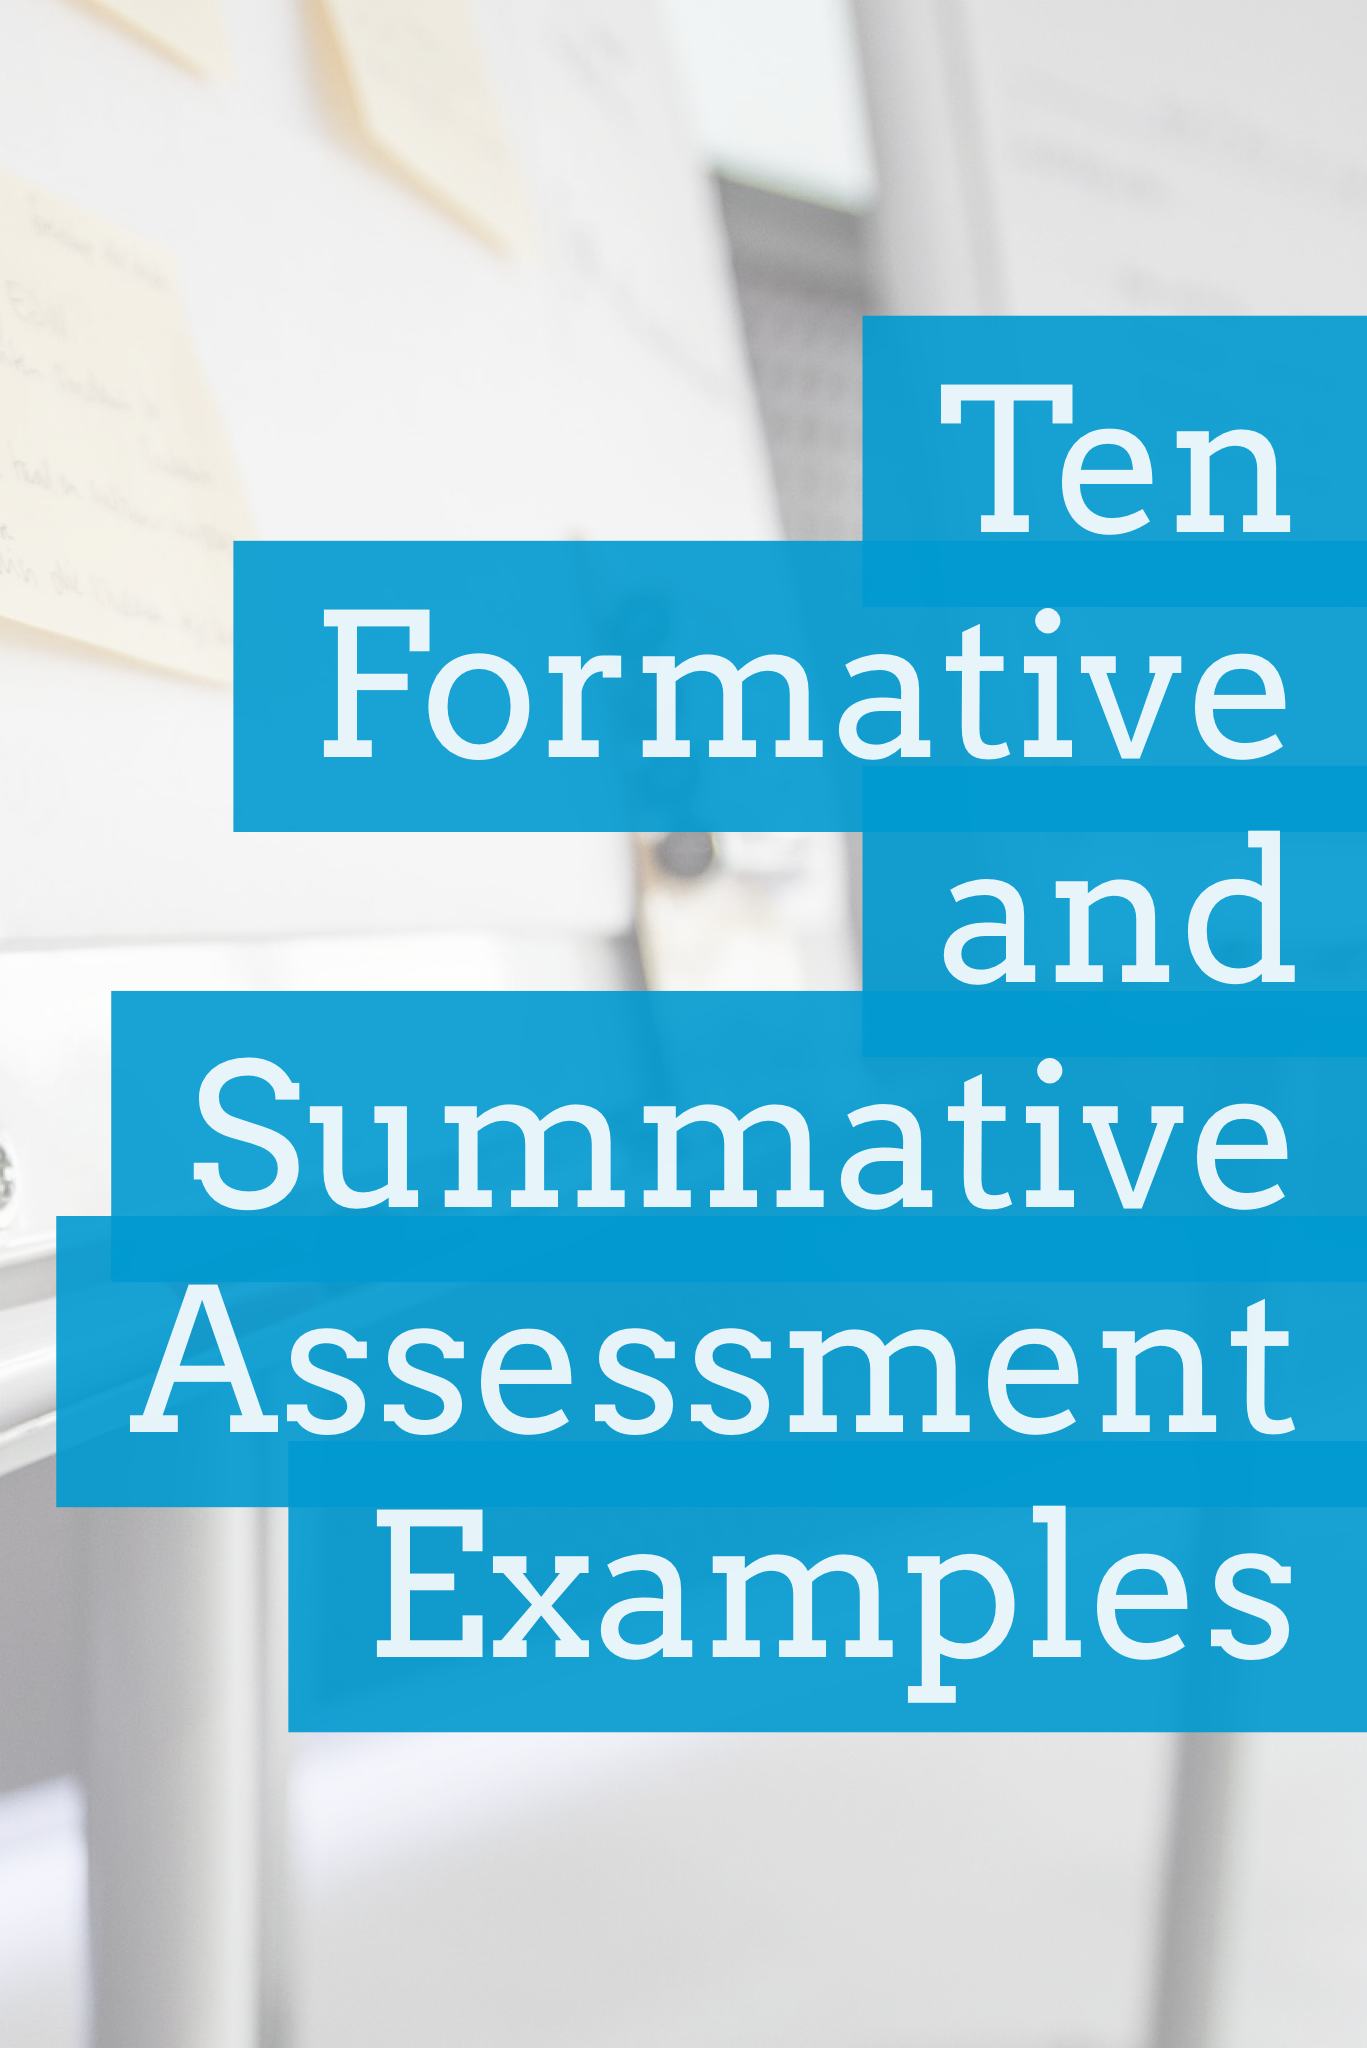 Ten Formative and Summative Assessment Examples to Inspire You